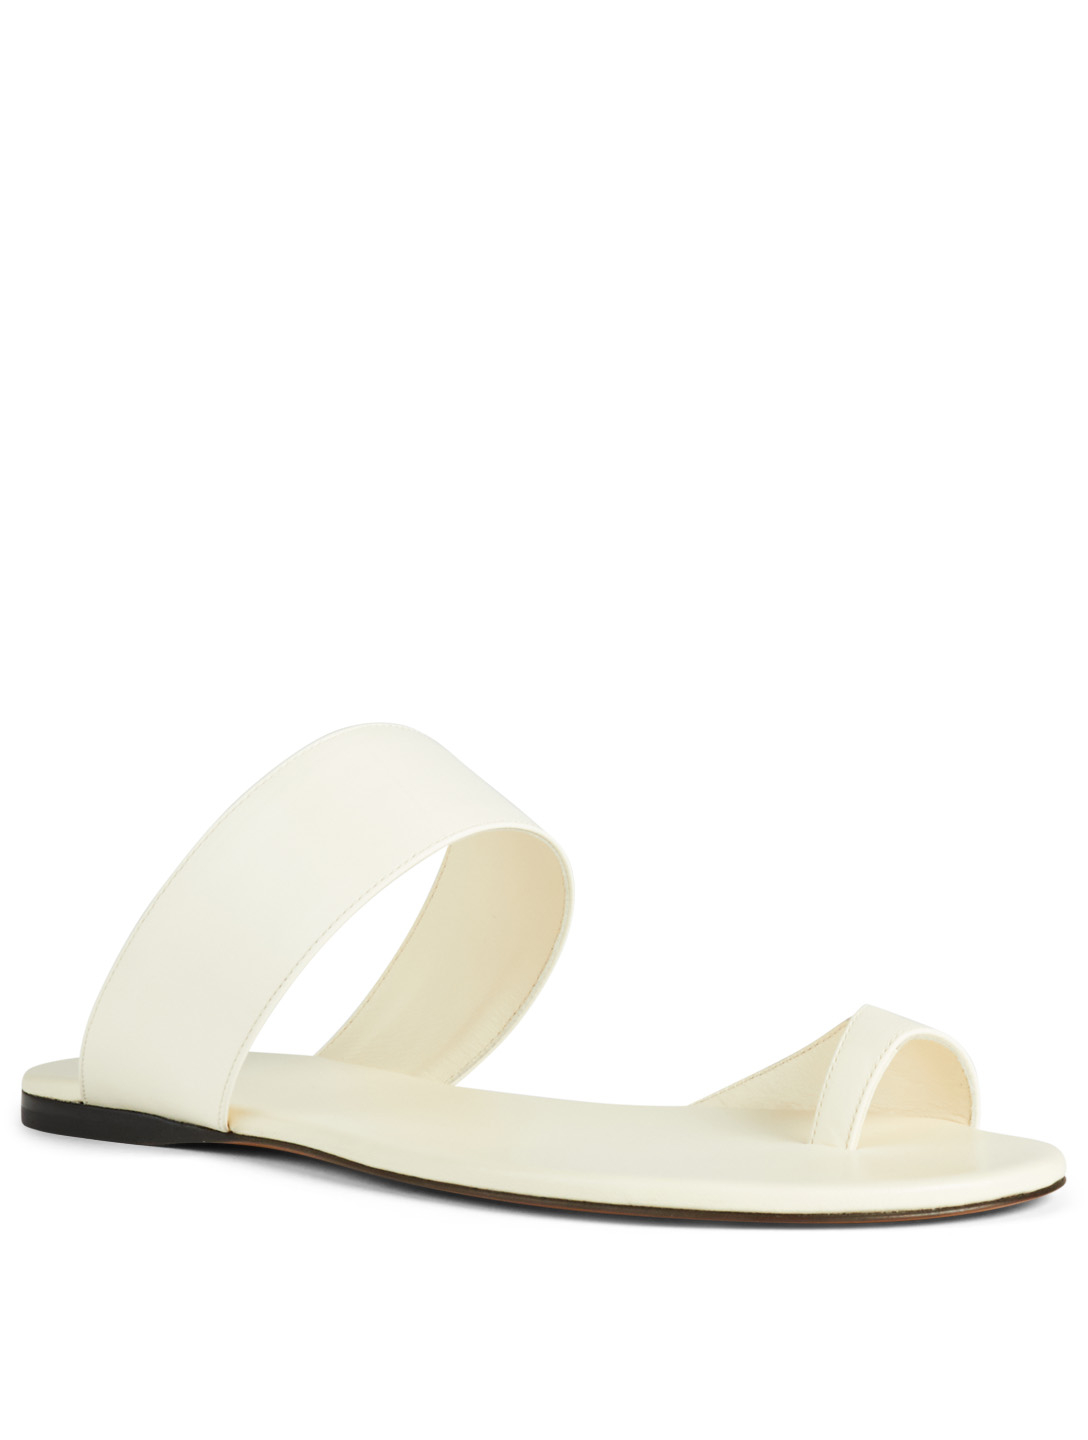 87b42ae8159 THE ROW Infradito Leather Sandals